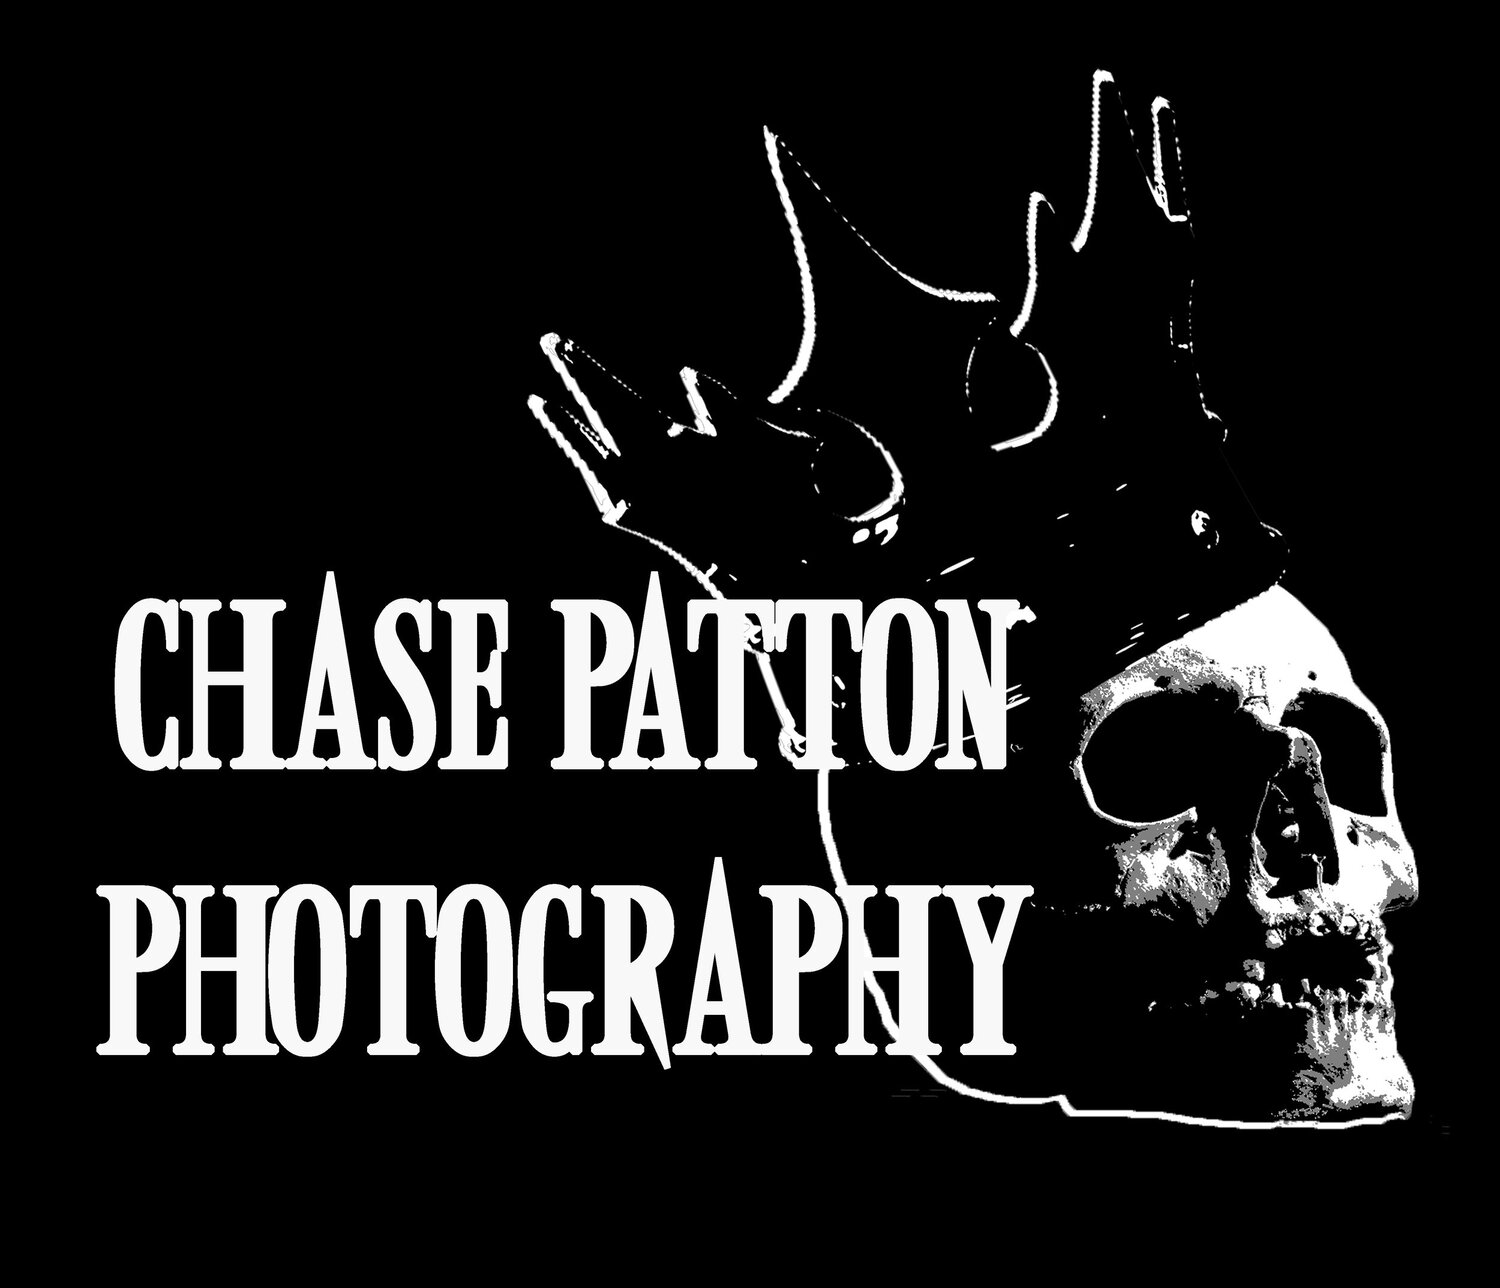 Chase Patton Photography